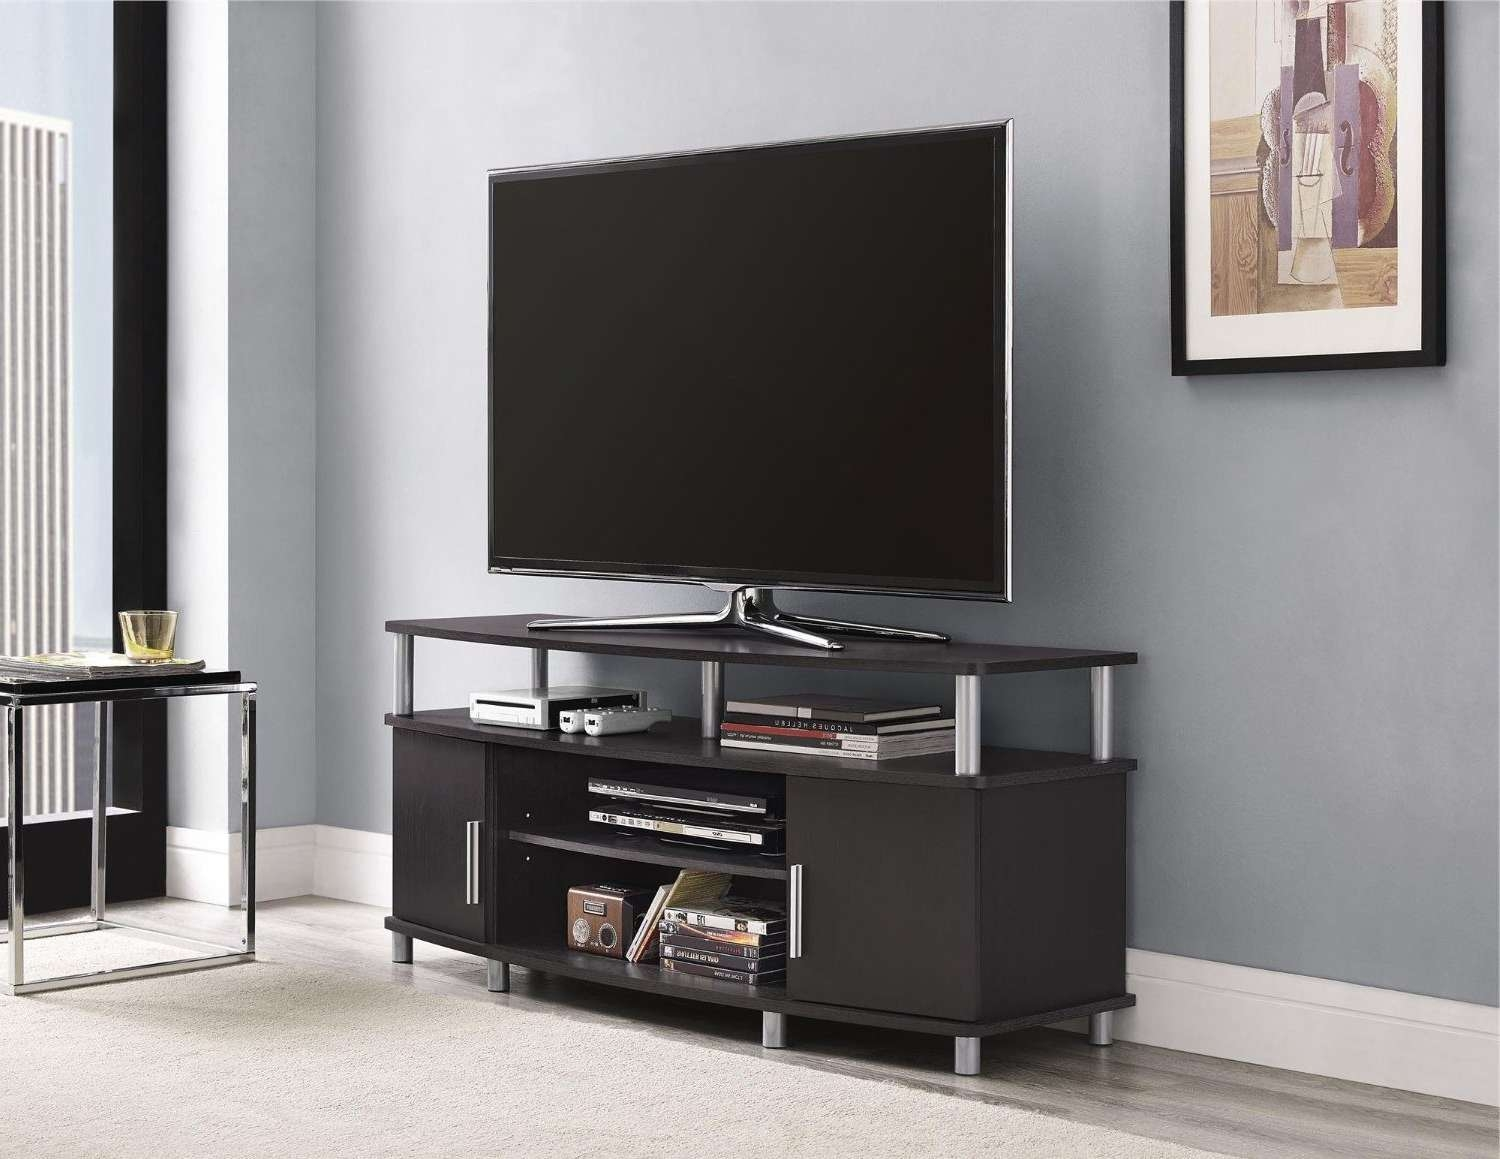 Tv : Upright Tv Stands Riveting Tall Upright Tv Stands' Terrifying Throughout Upright Tv Stands (View 17 of 20)